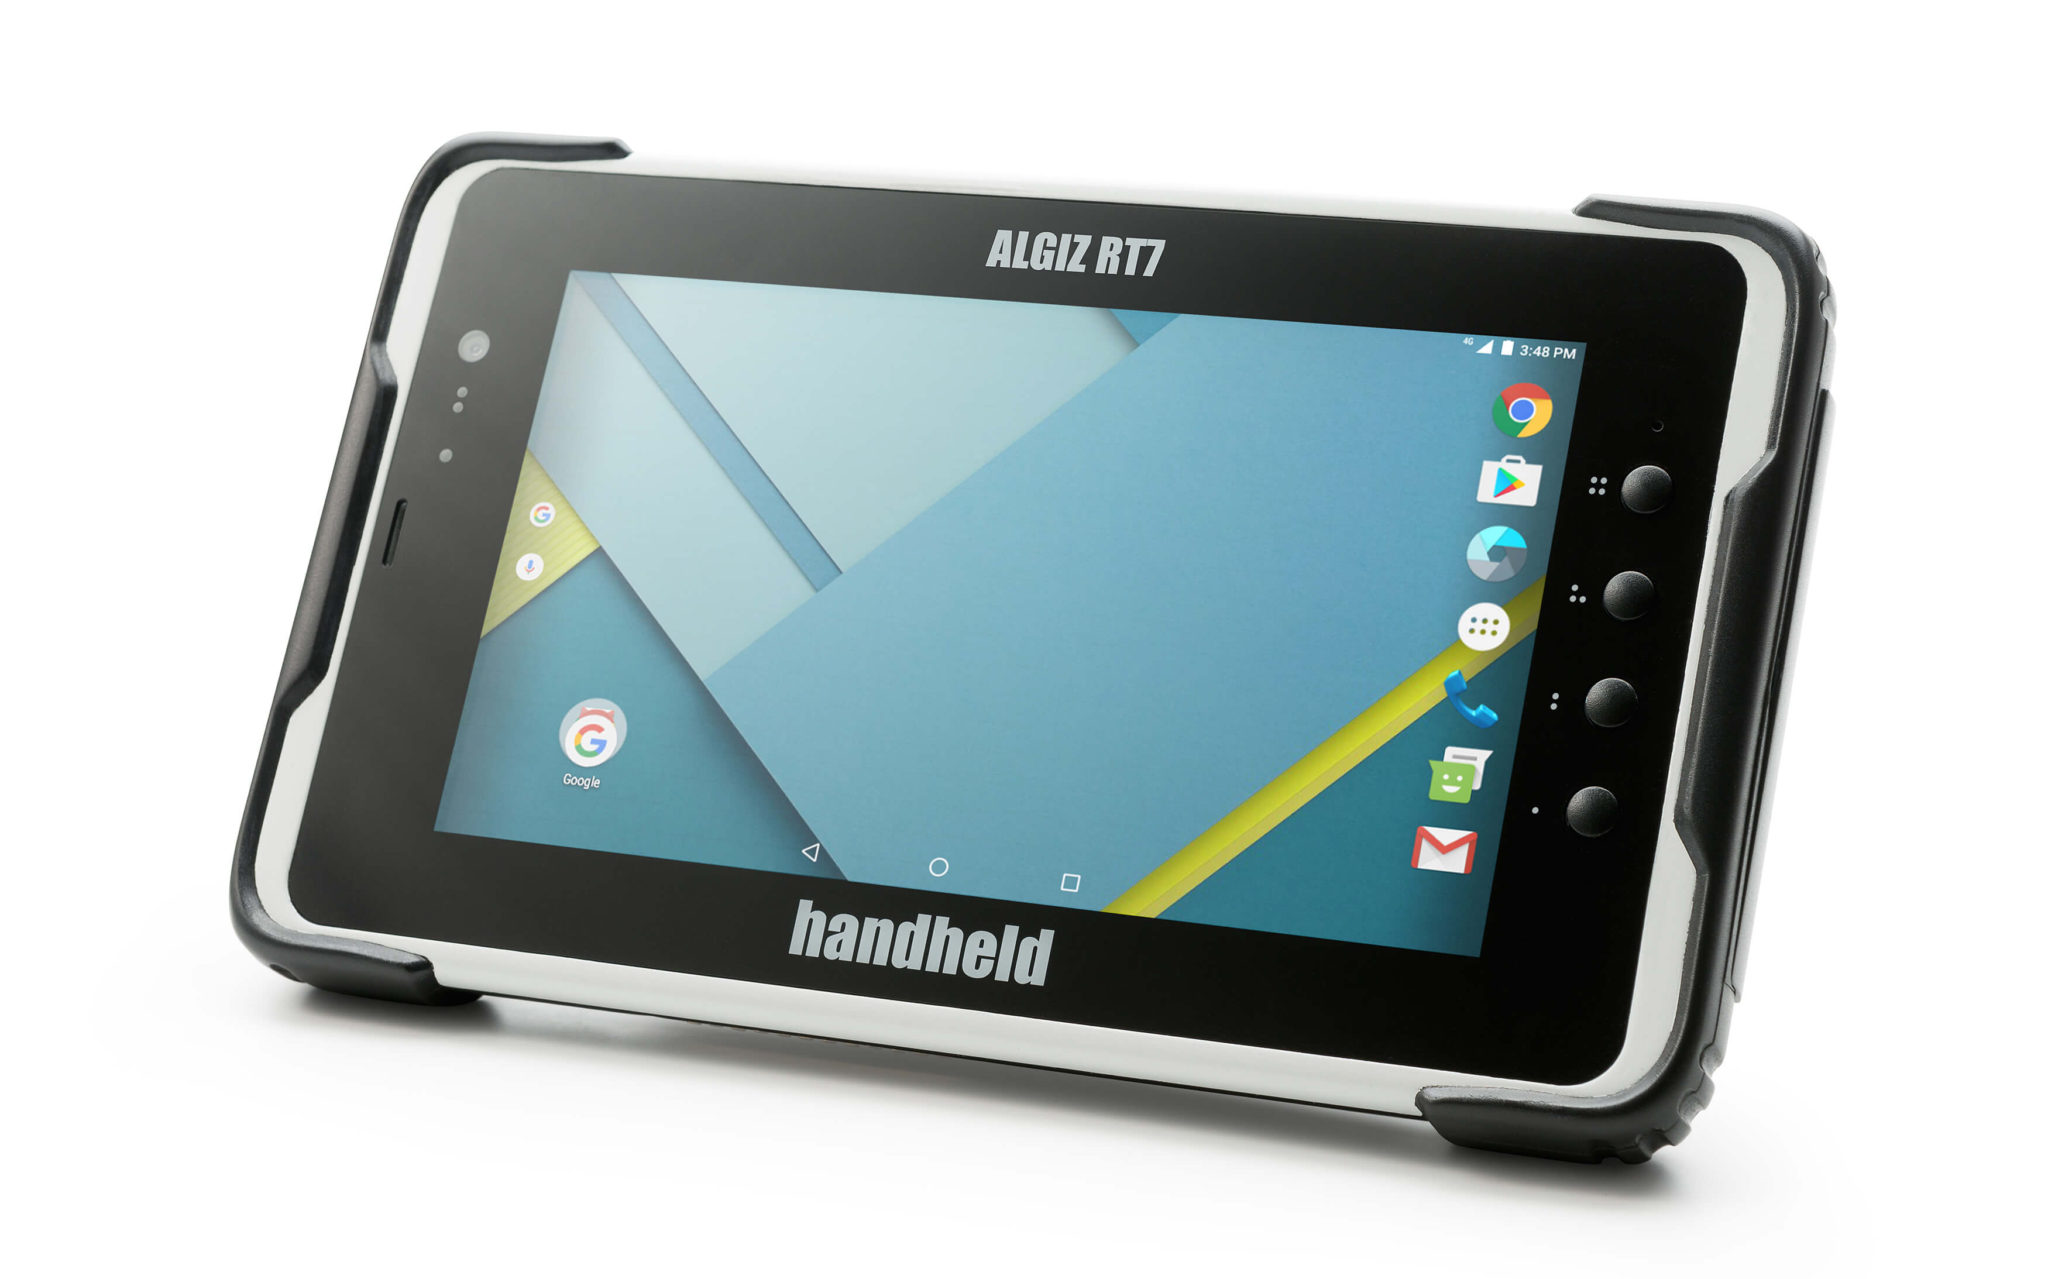 Algiz-RT7-handheld-tablet-facing-left-Android-6